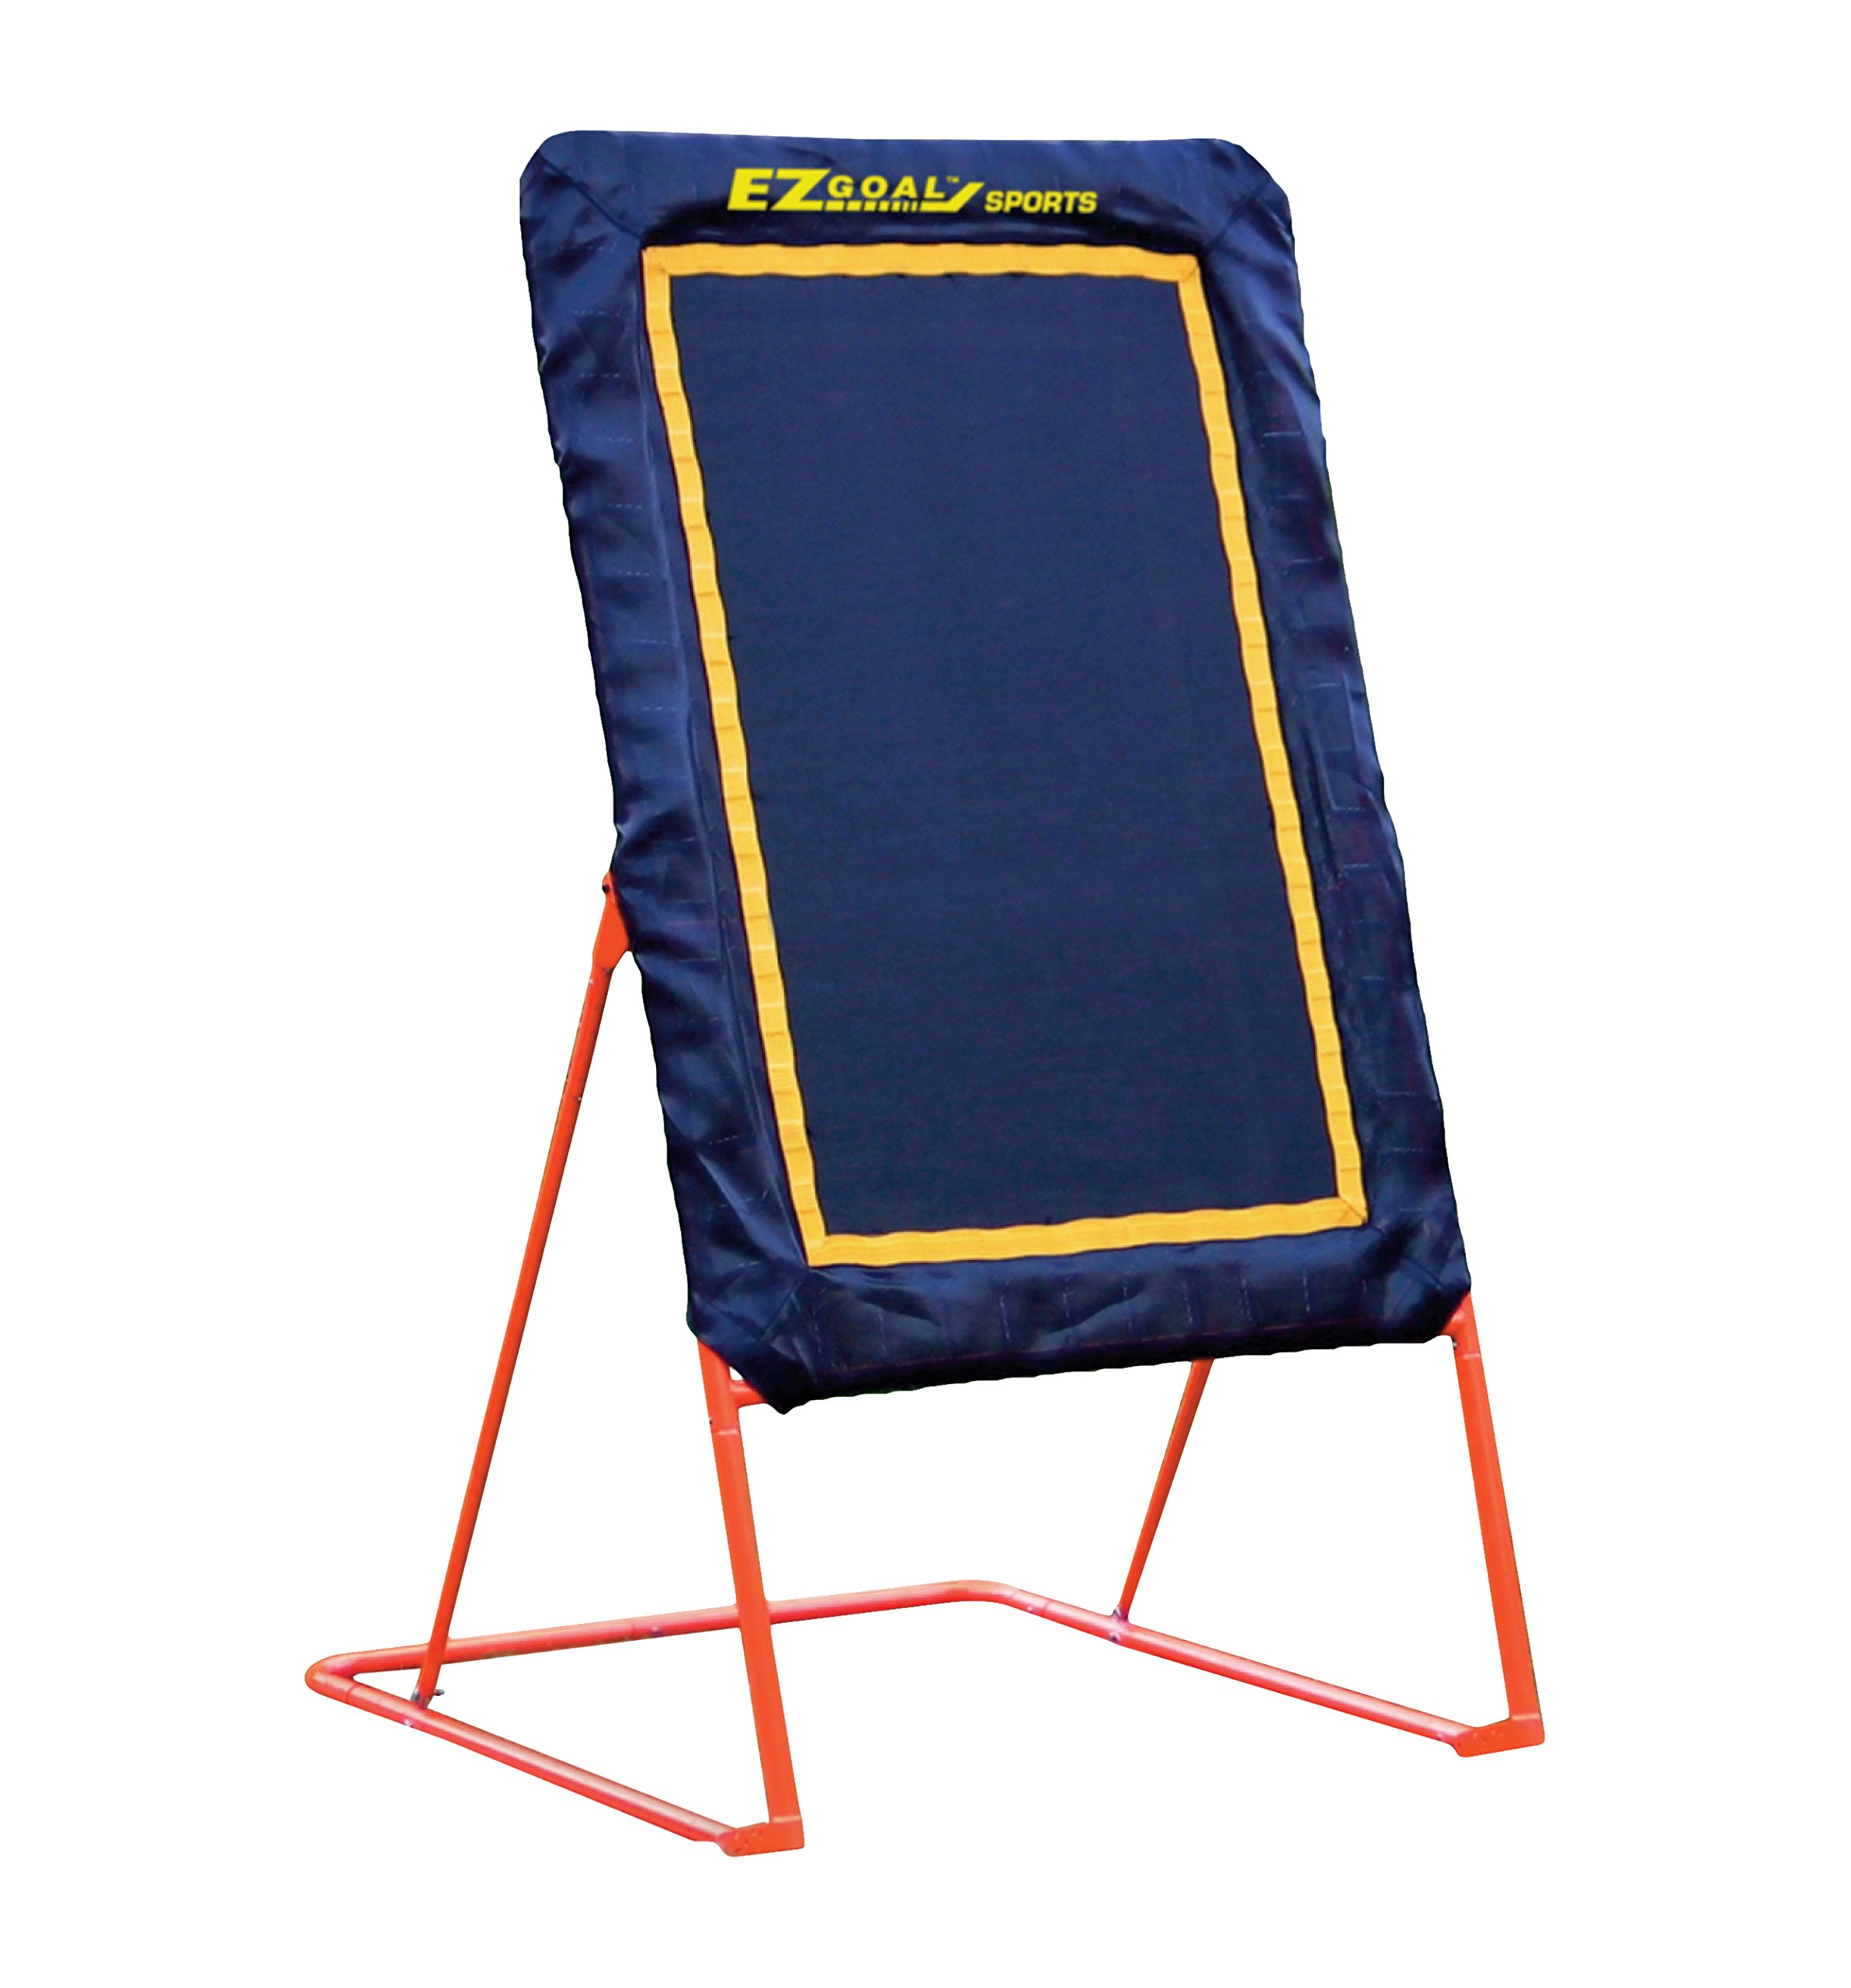 EZ Goal Professional Folding Lacrosse Throwback Rebounder, 8 Feet by EZGoal